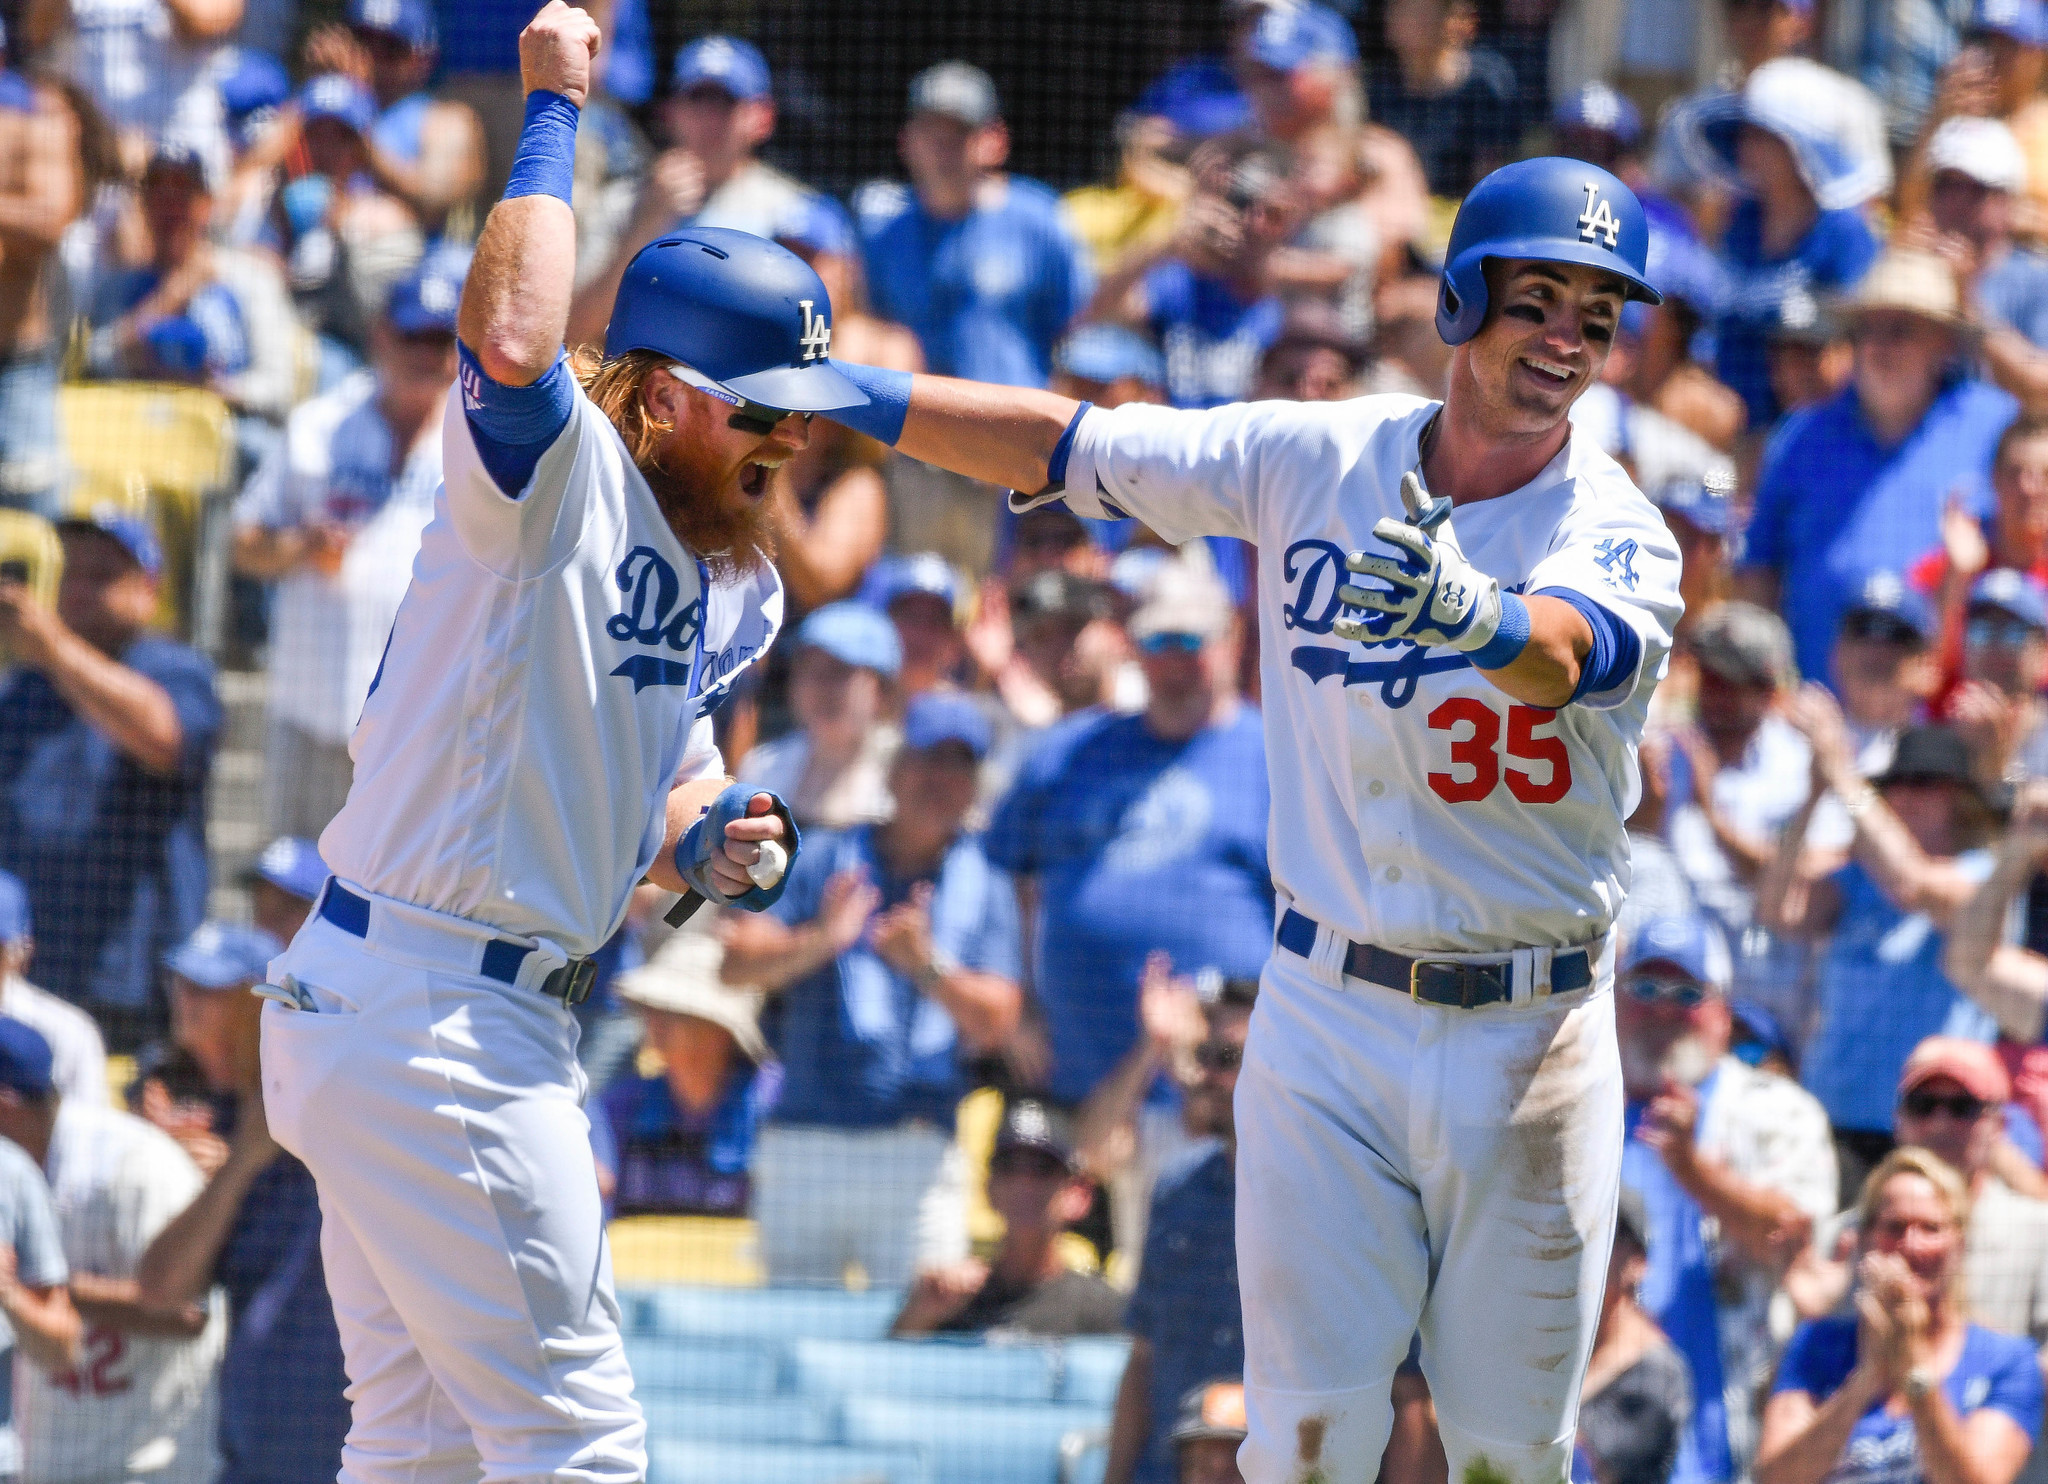 Sd-sp-mlb-power-rankings-taming-nl-west-20170626